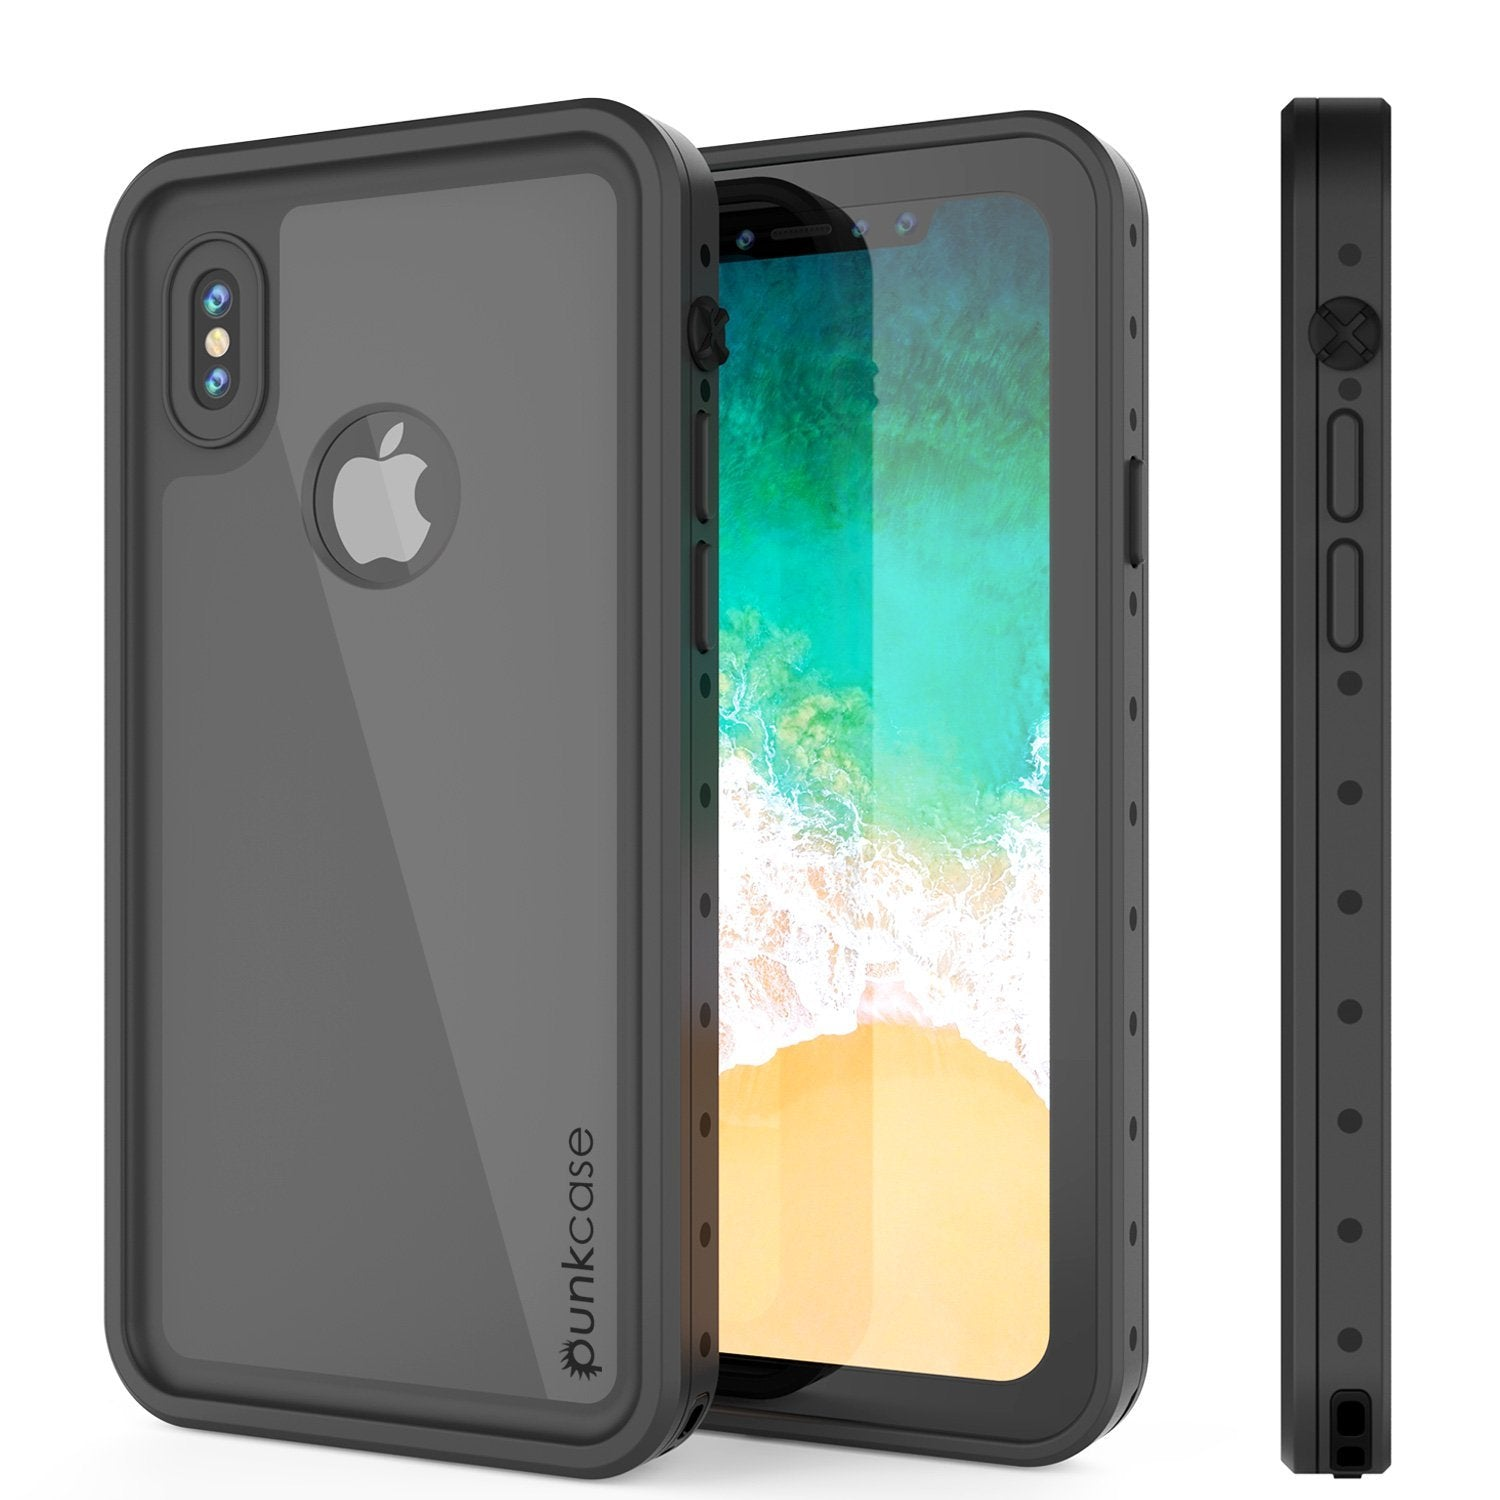 iPhone XS Max Waterproof IP68 Case, Punkcase [Black] [StudStar Series] [Slim Fit] [Dirtproof]